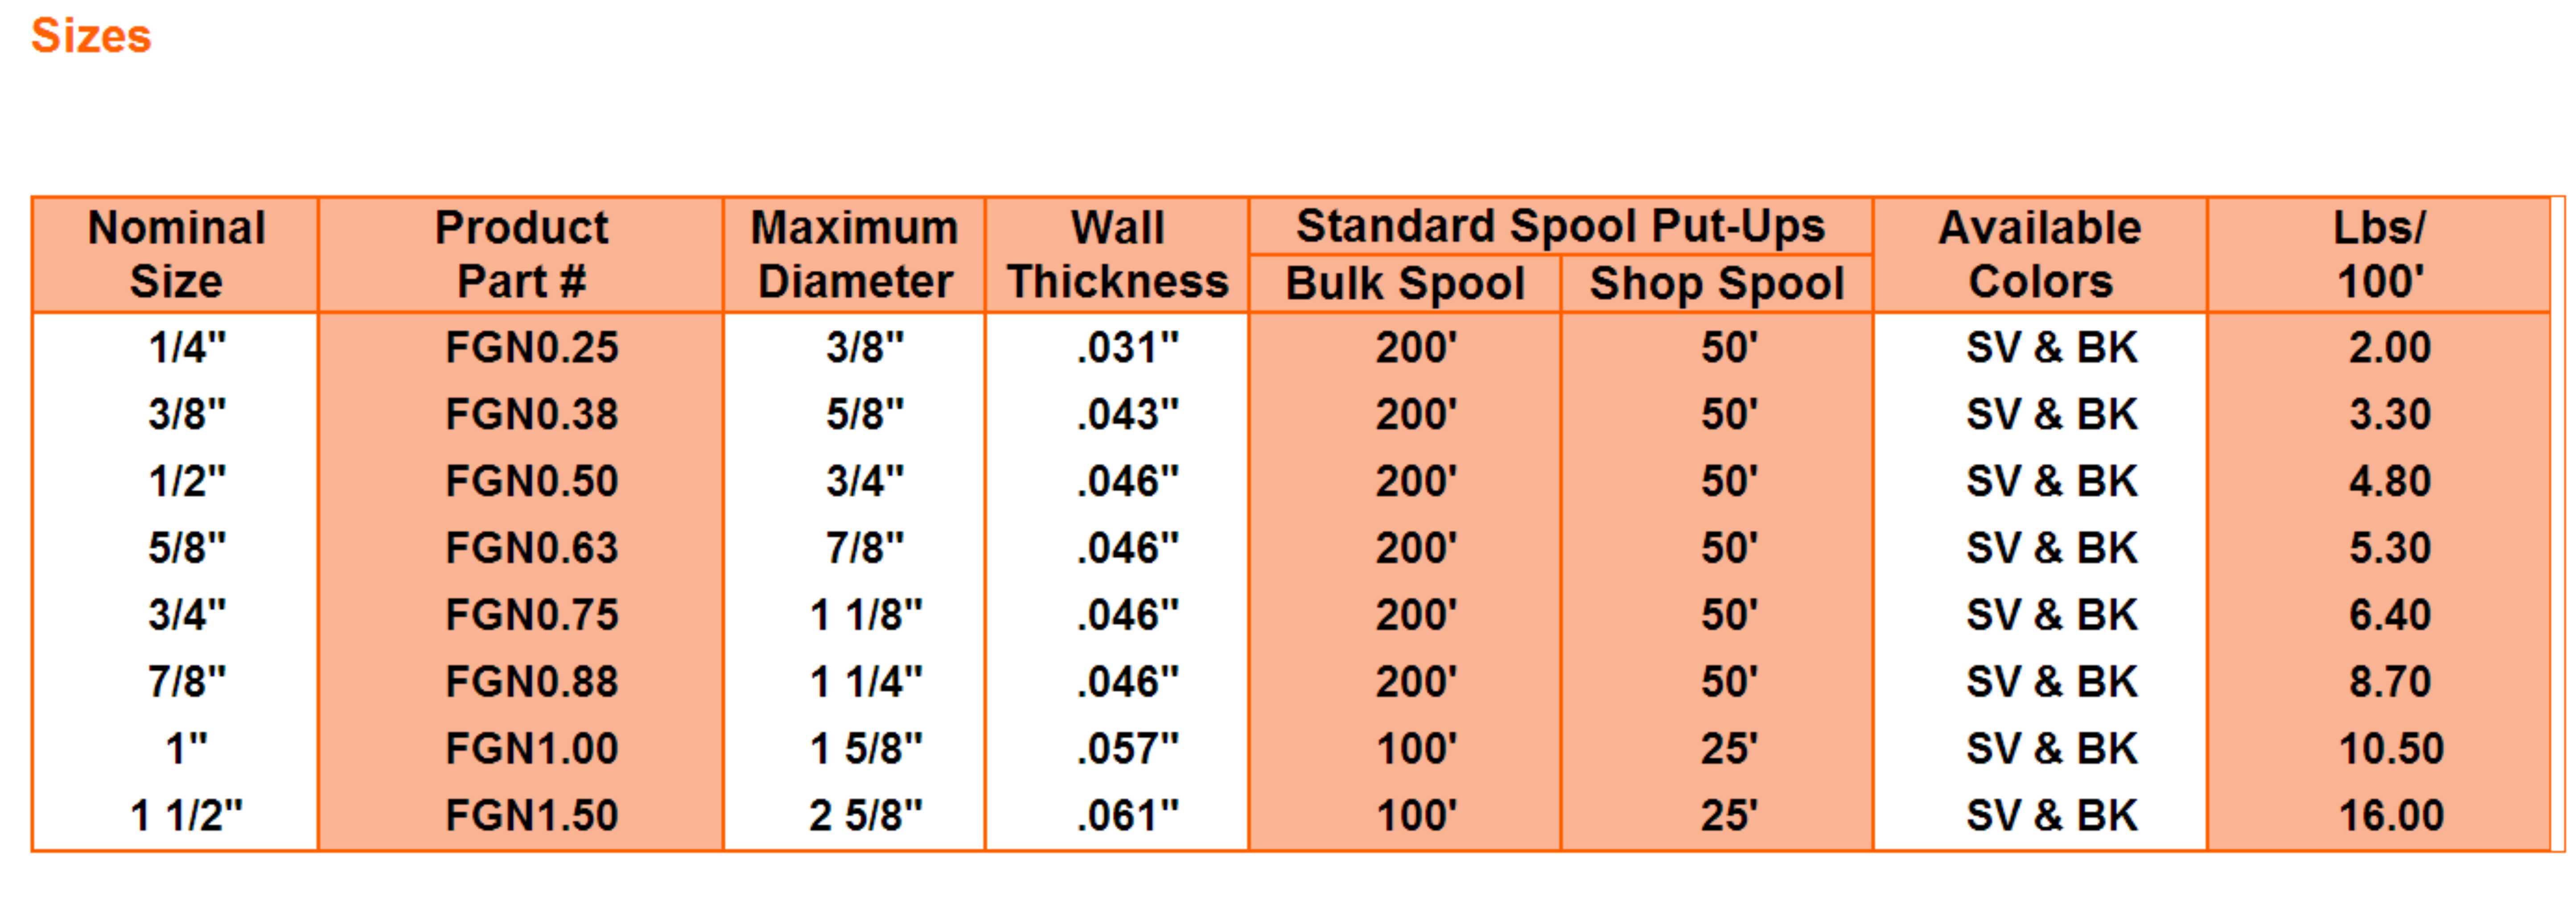 Insultherm Fiberglass Braided Sleeving Sizes.jpg